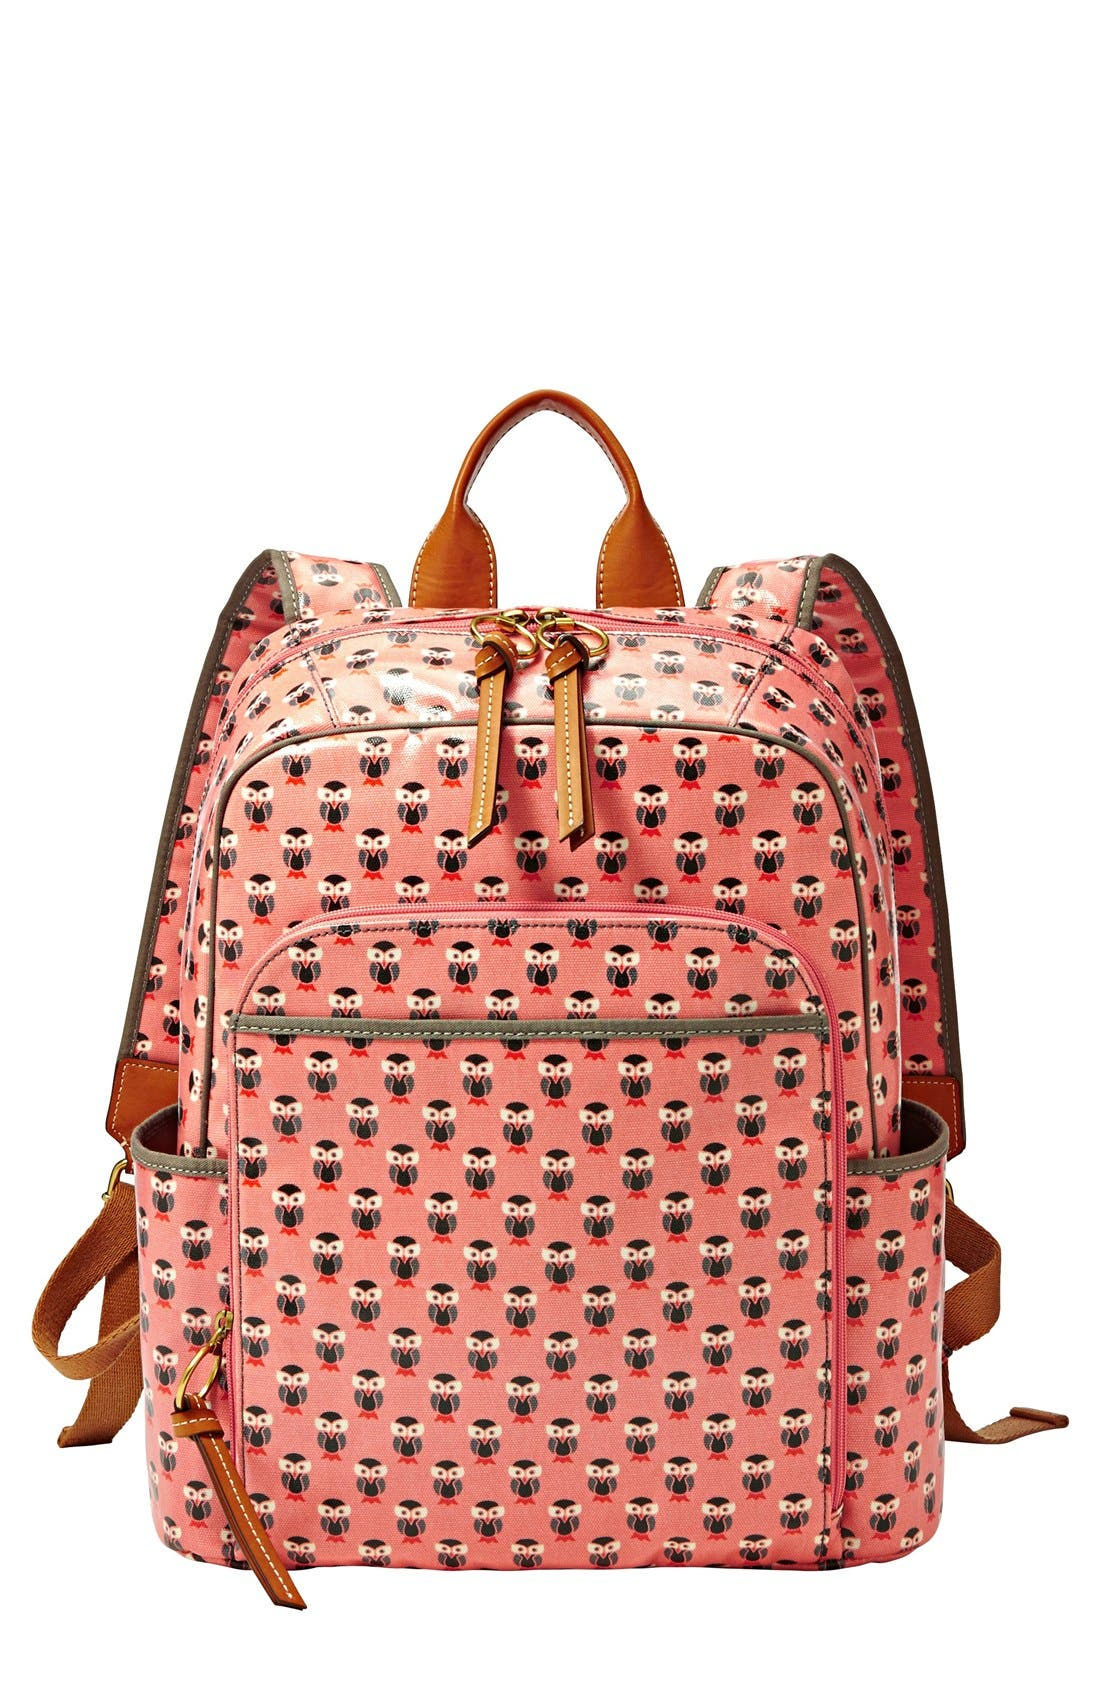 Alternate Image 1 Selected - Fossil 'Key-Per' Print Coated Canvas Backpack